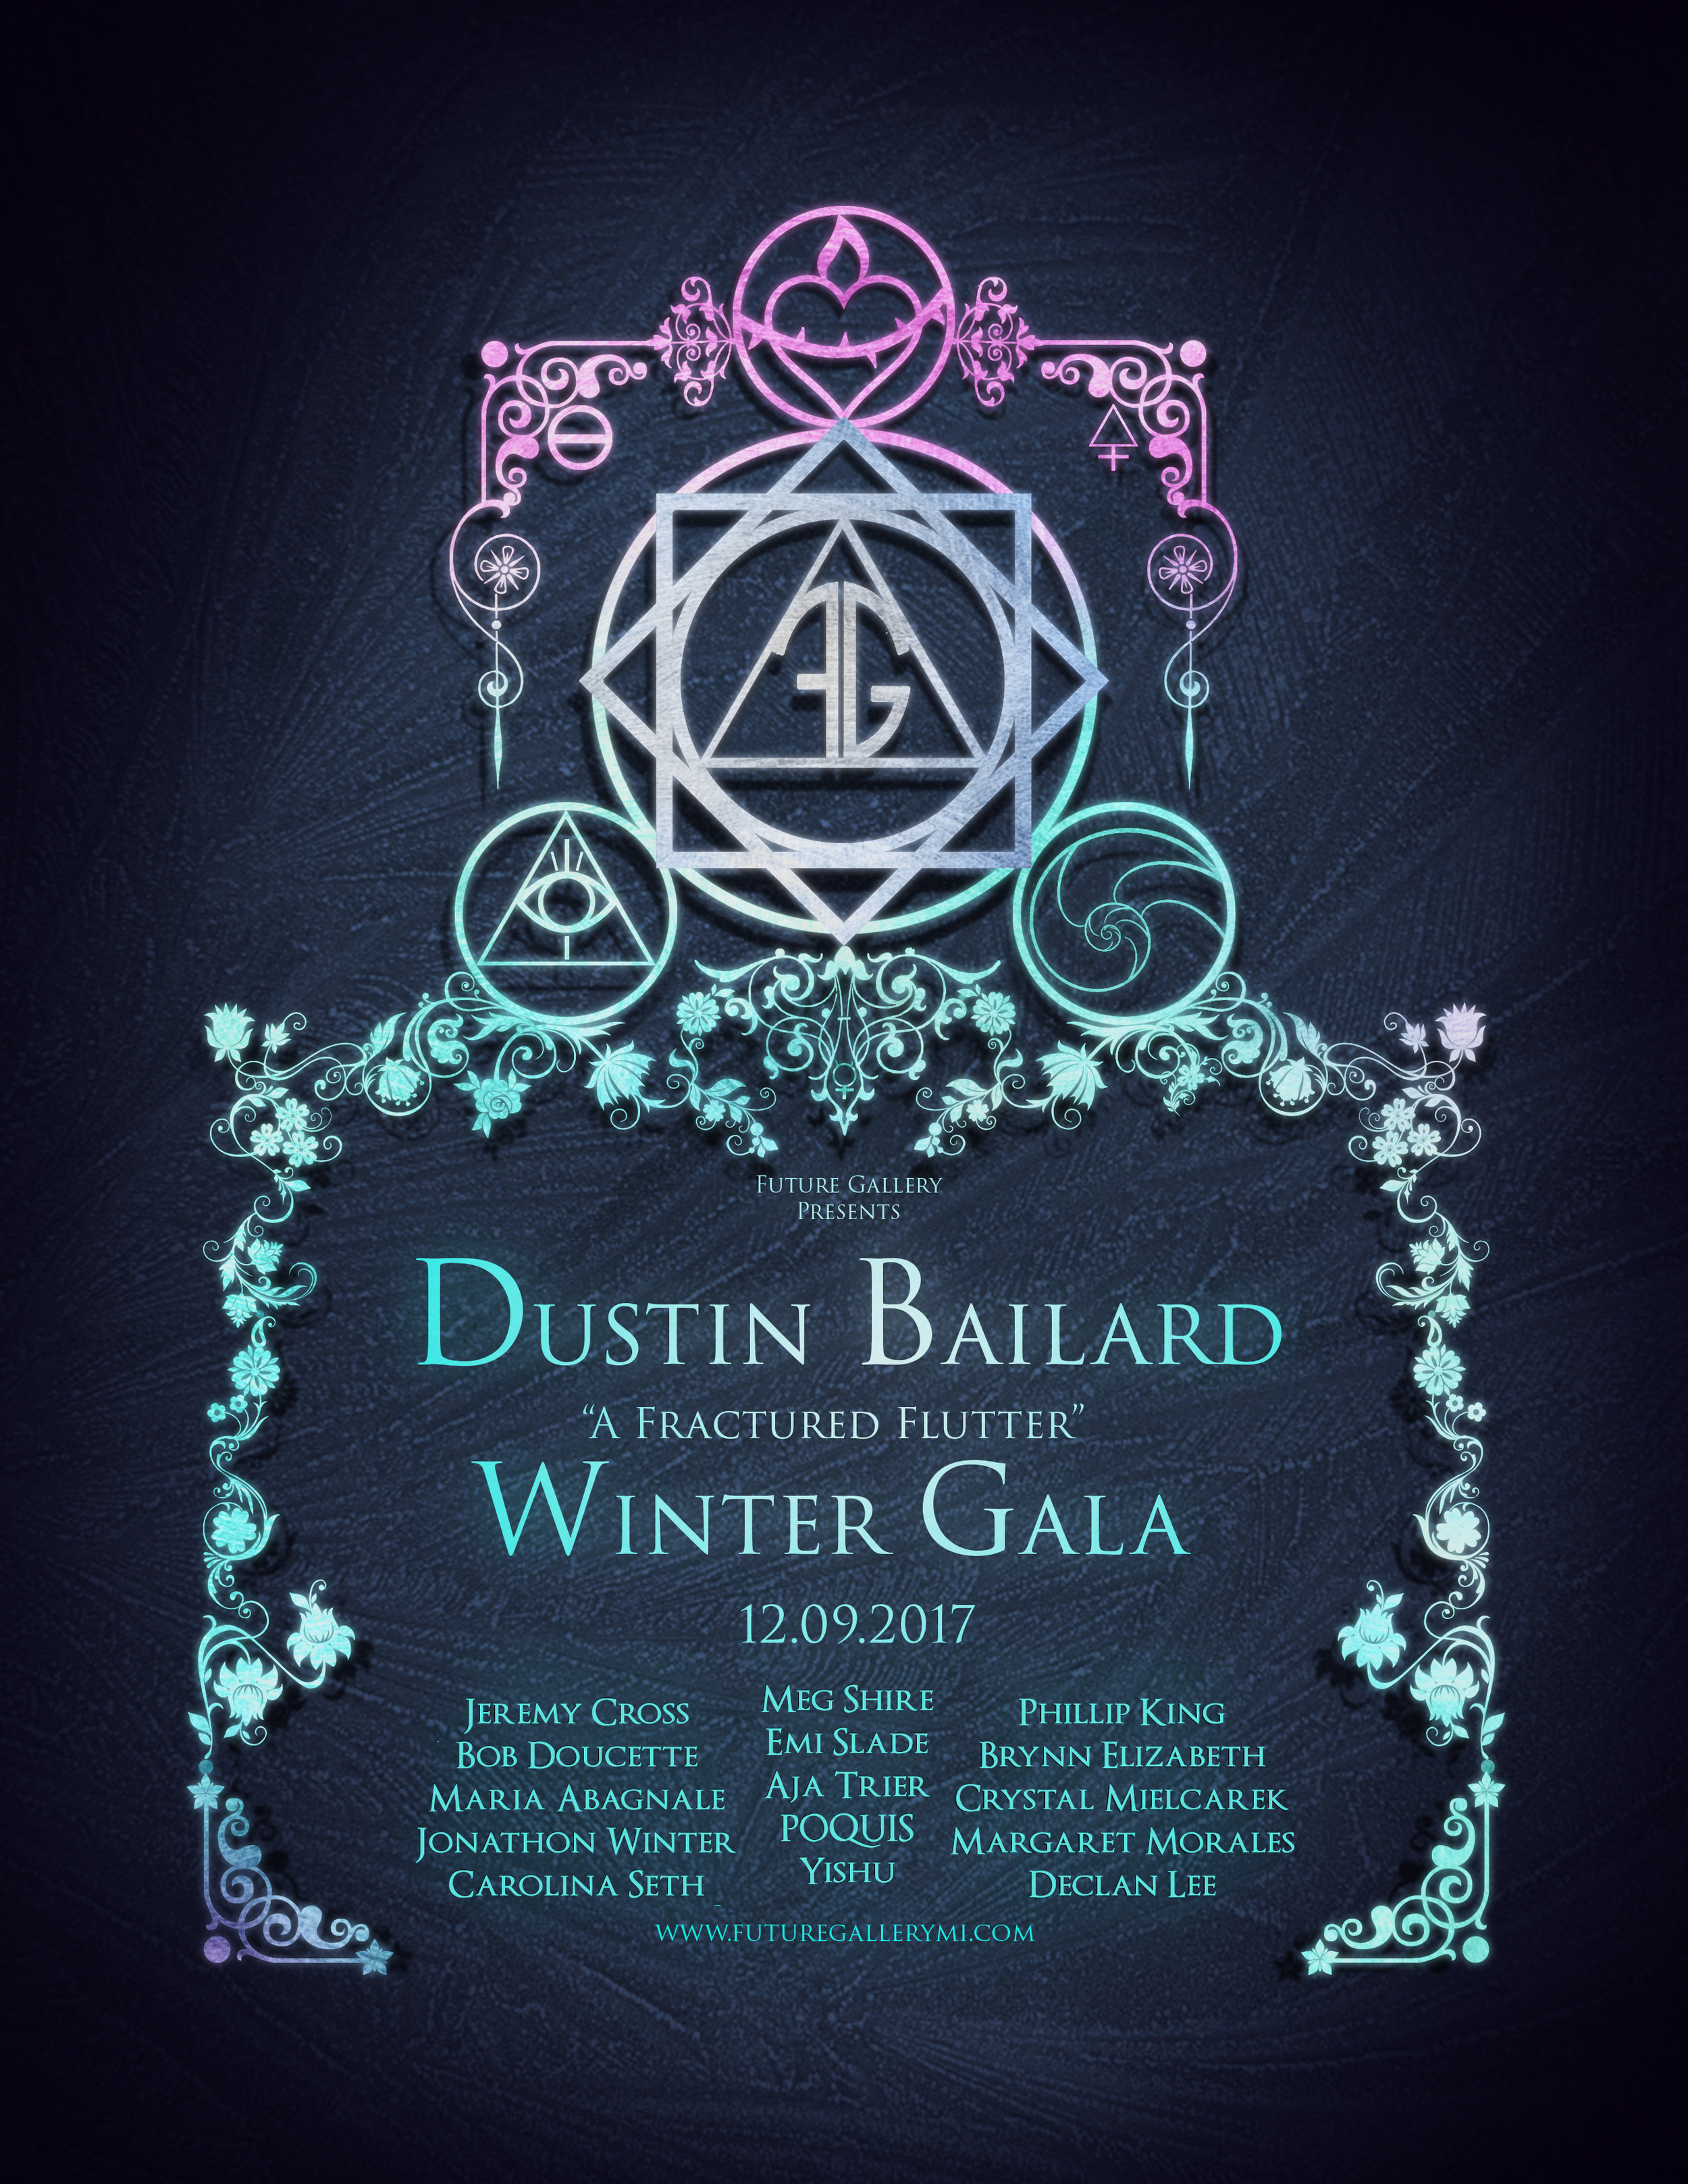 A Fracture Flutter - by Dustin Bailard We are ending this year with one of the most anticipated and extraordinary Solo events of our gallery: